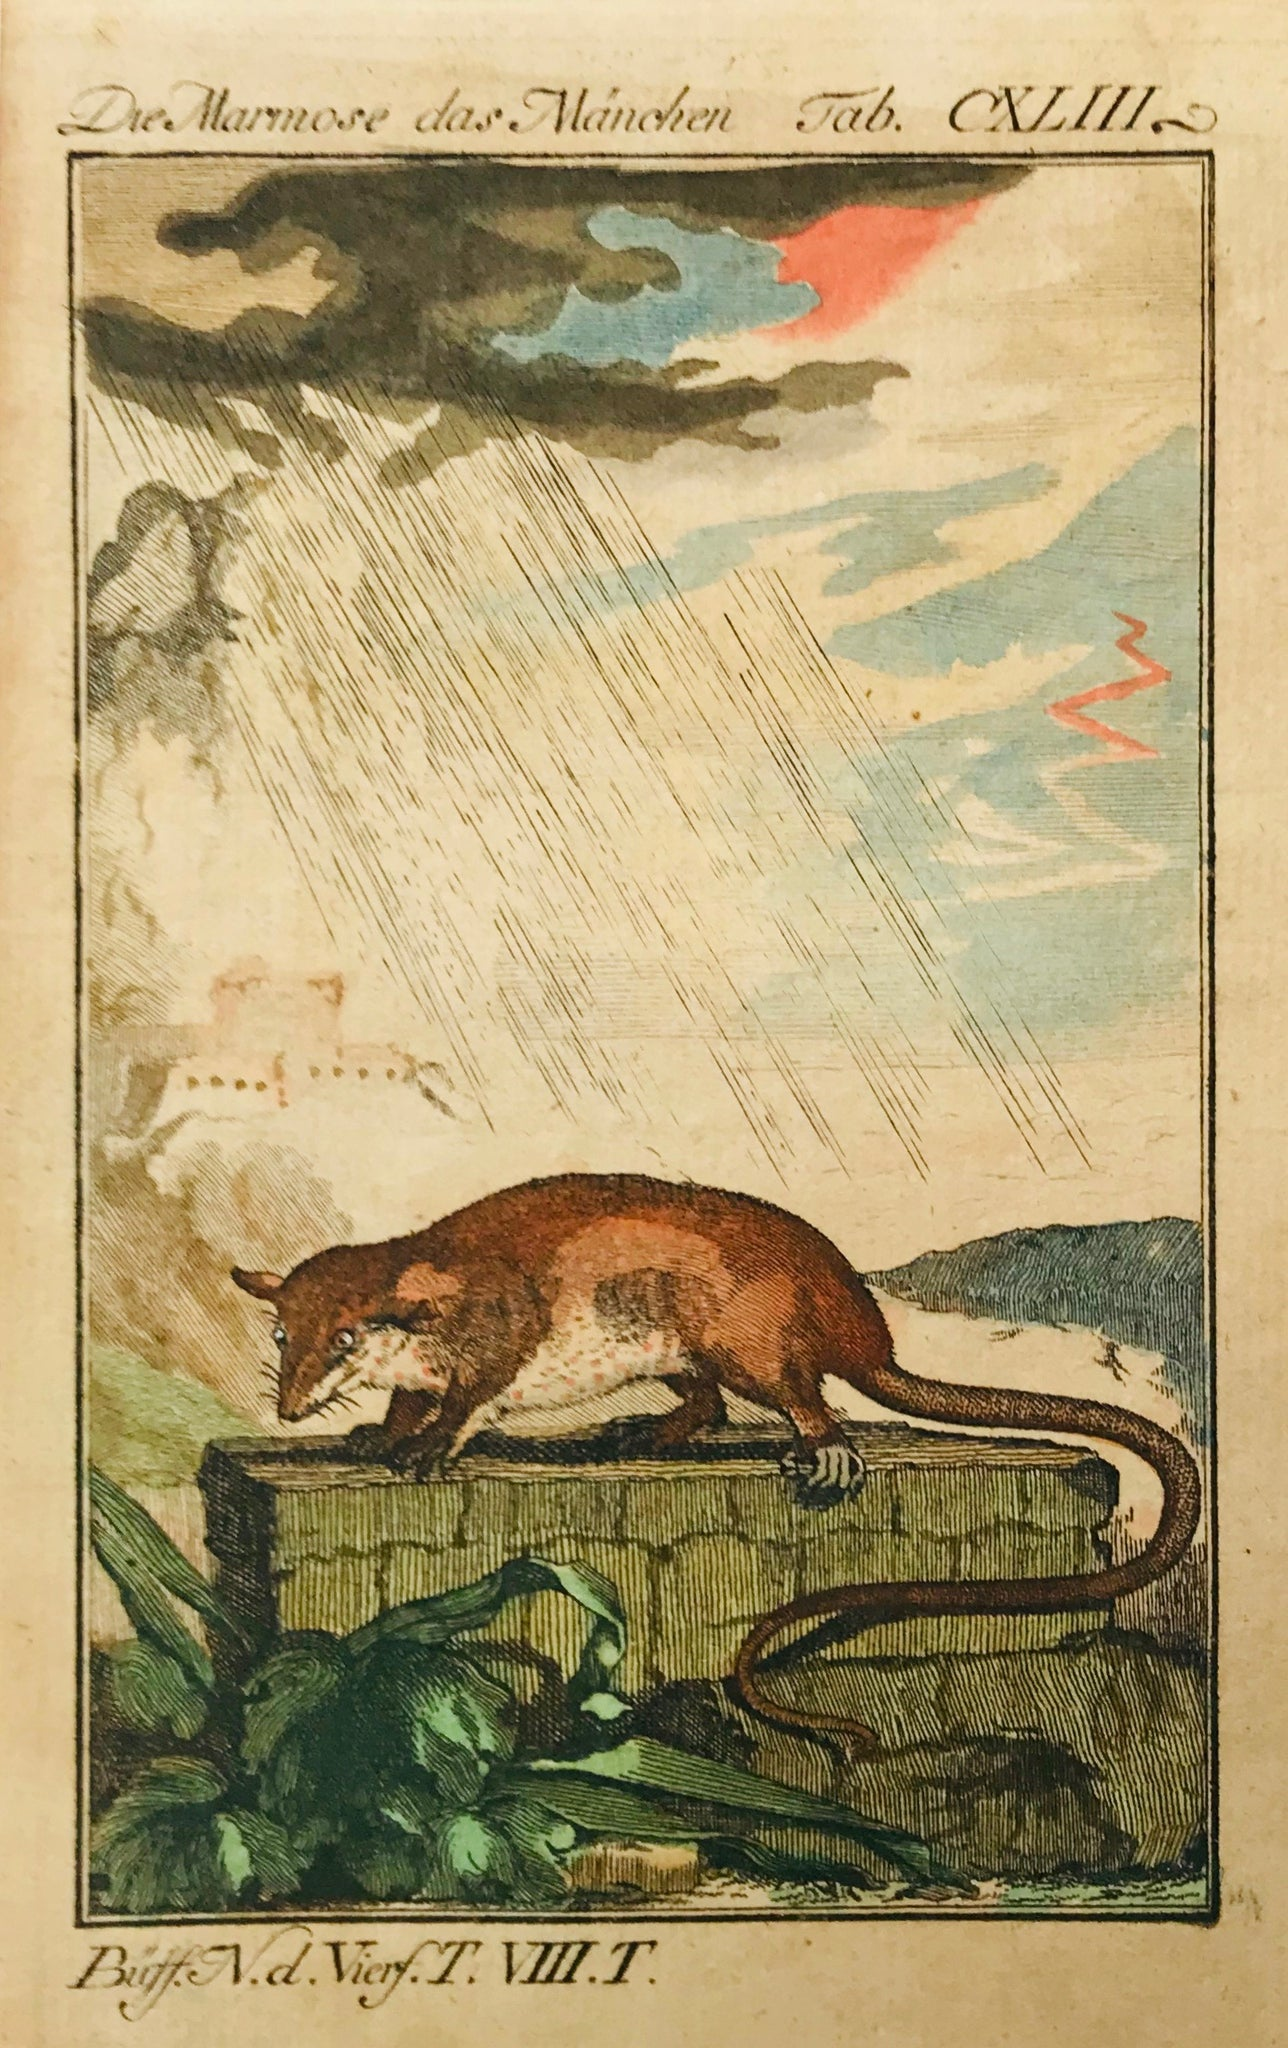 Der Marmose das Maenchen  Notice the dramatic sky showing a lightning and thunderstorm!  Copper engraving ca 1780. Original hand coloring.